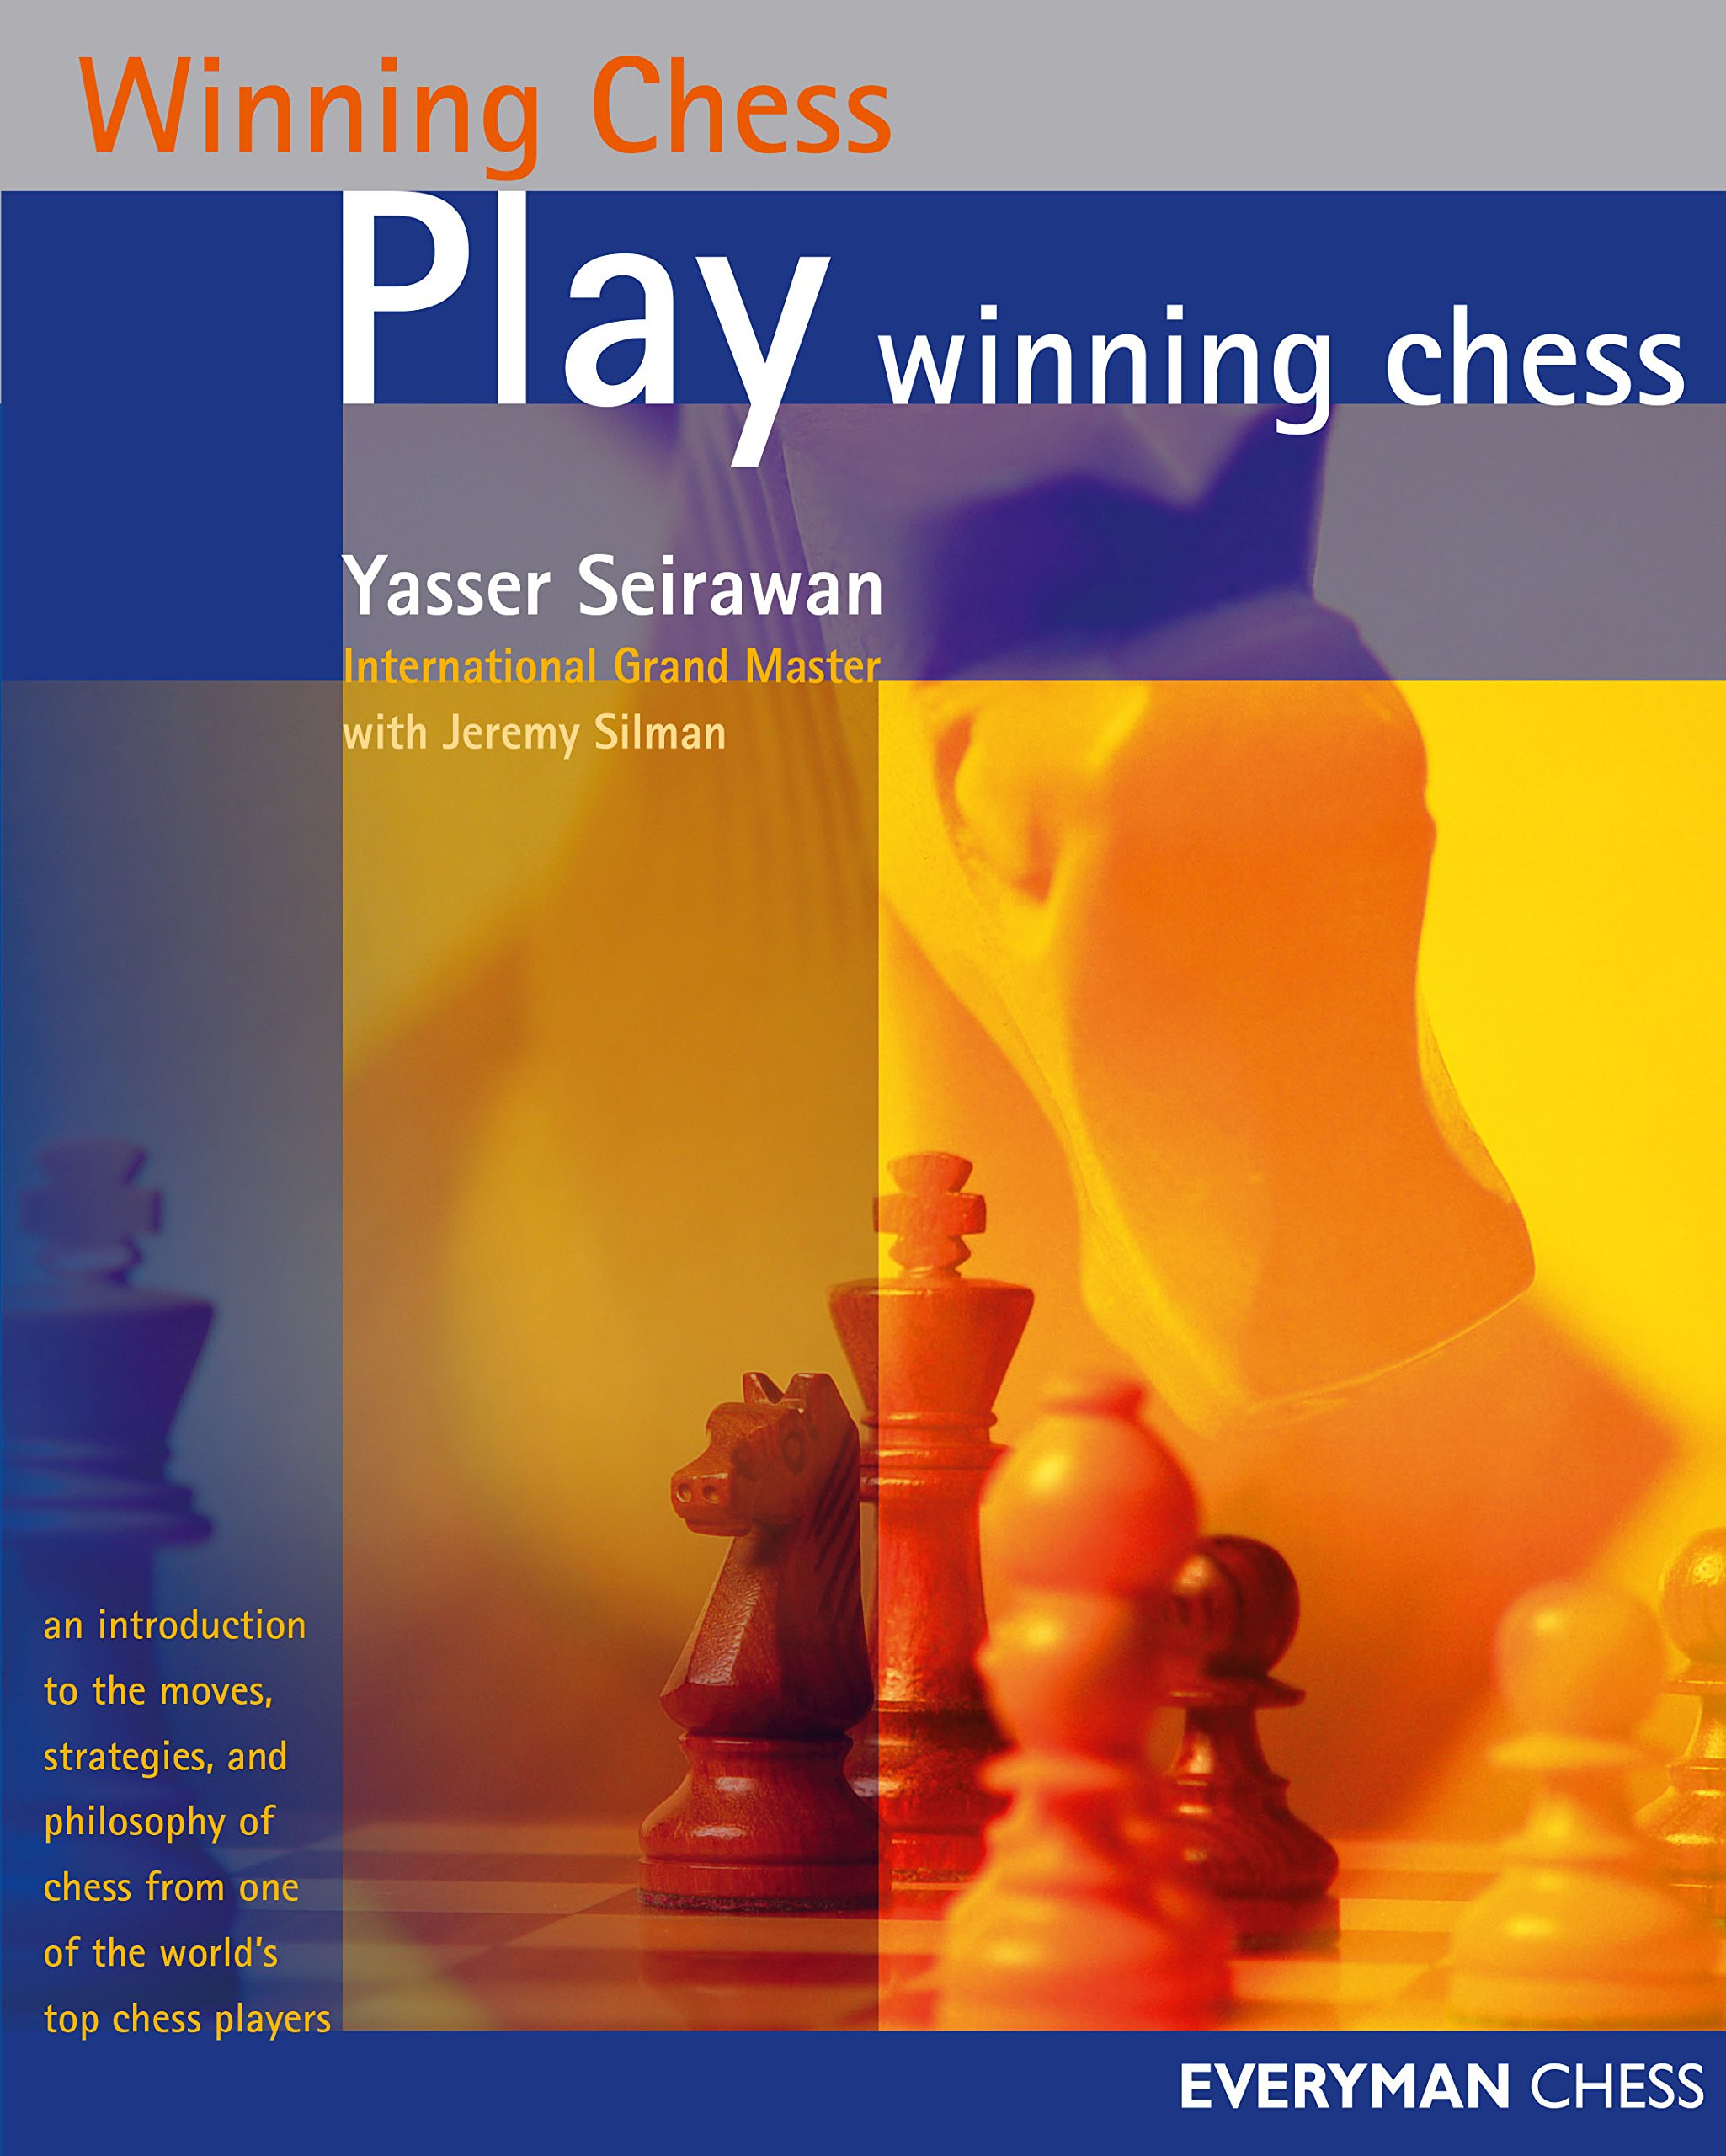 Play winning chess yasser seirawan 9781857443318 amazon books fandeluxe Choice Image